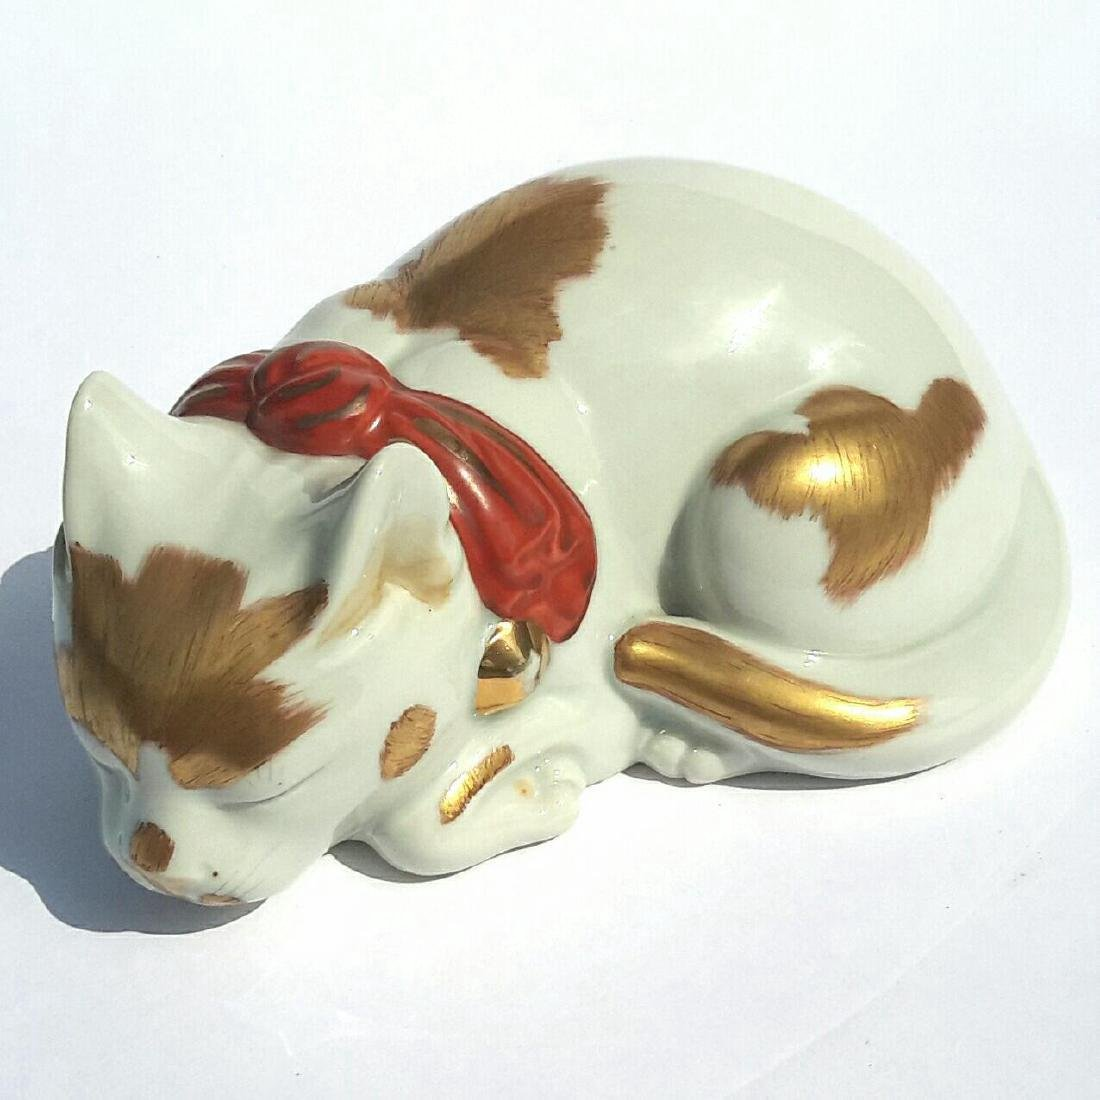 Early Vintage Japanese Kutani Porcelain Sleeping Cat